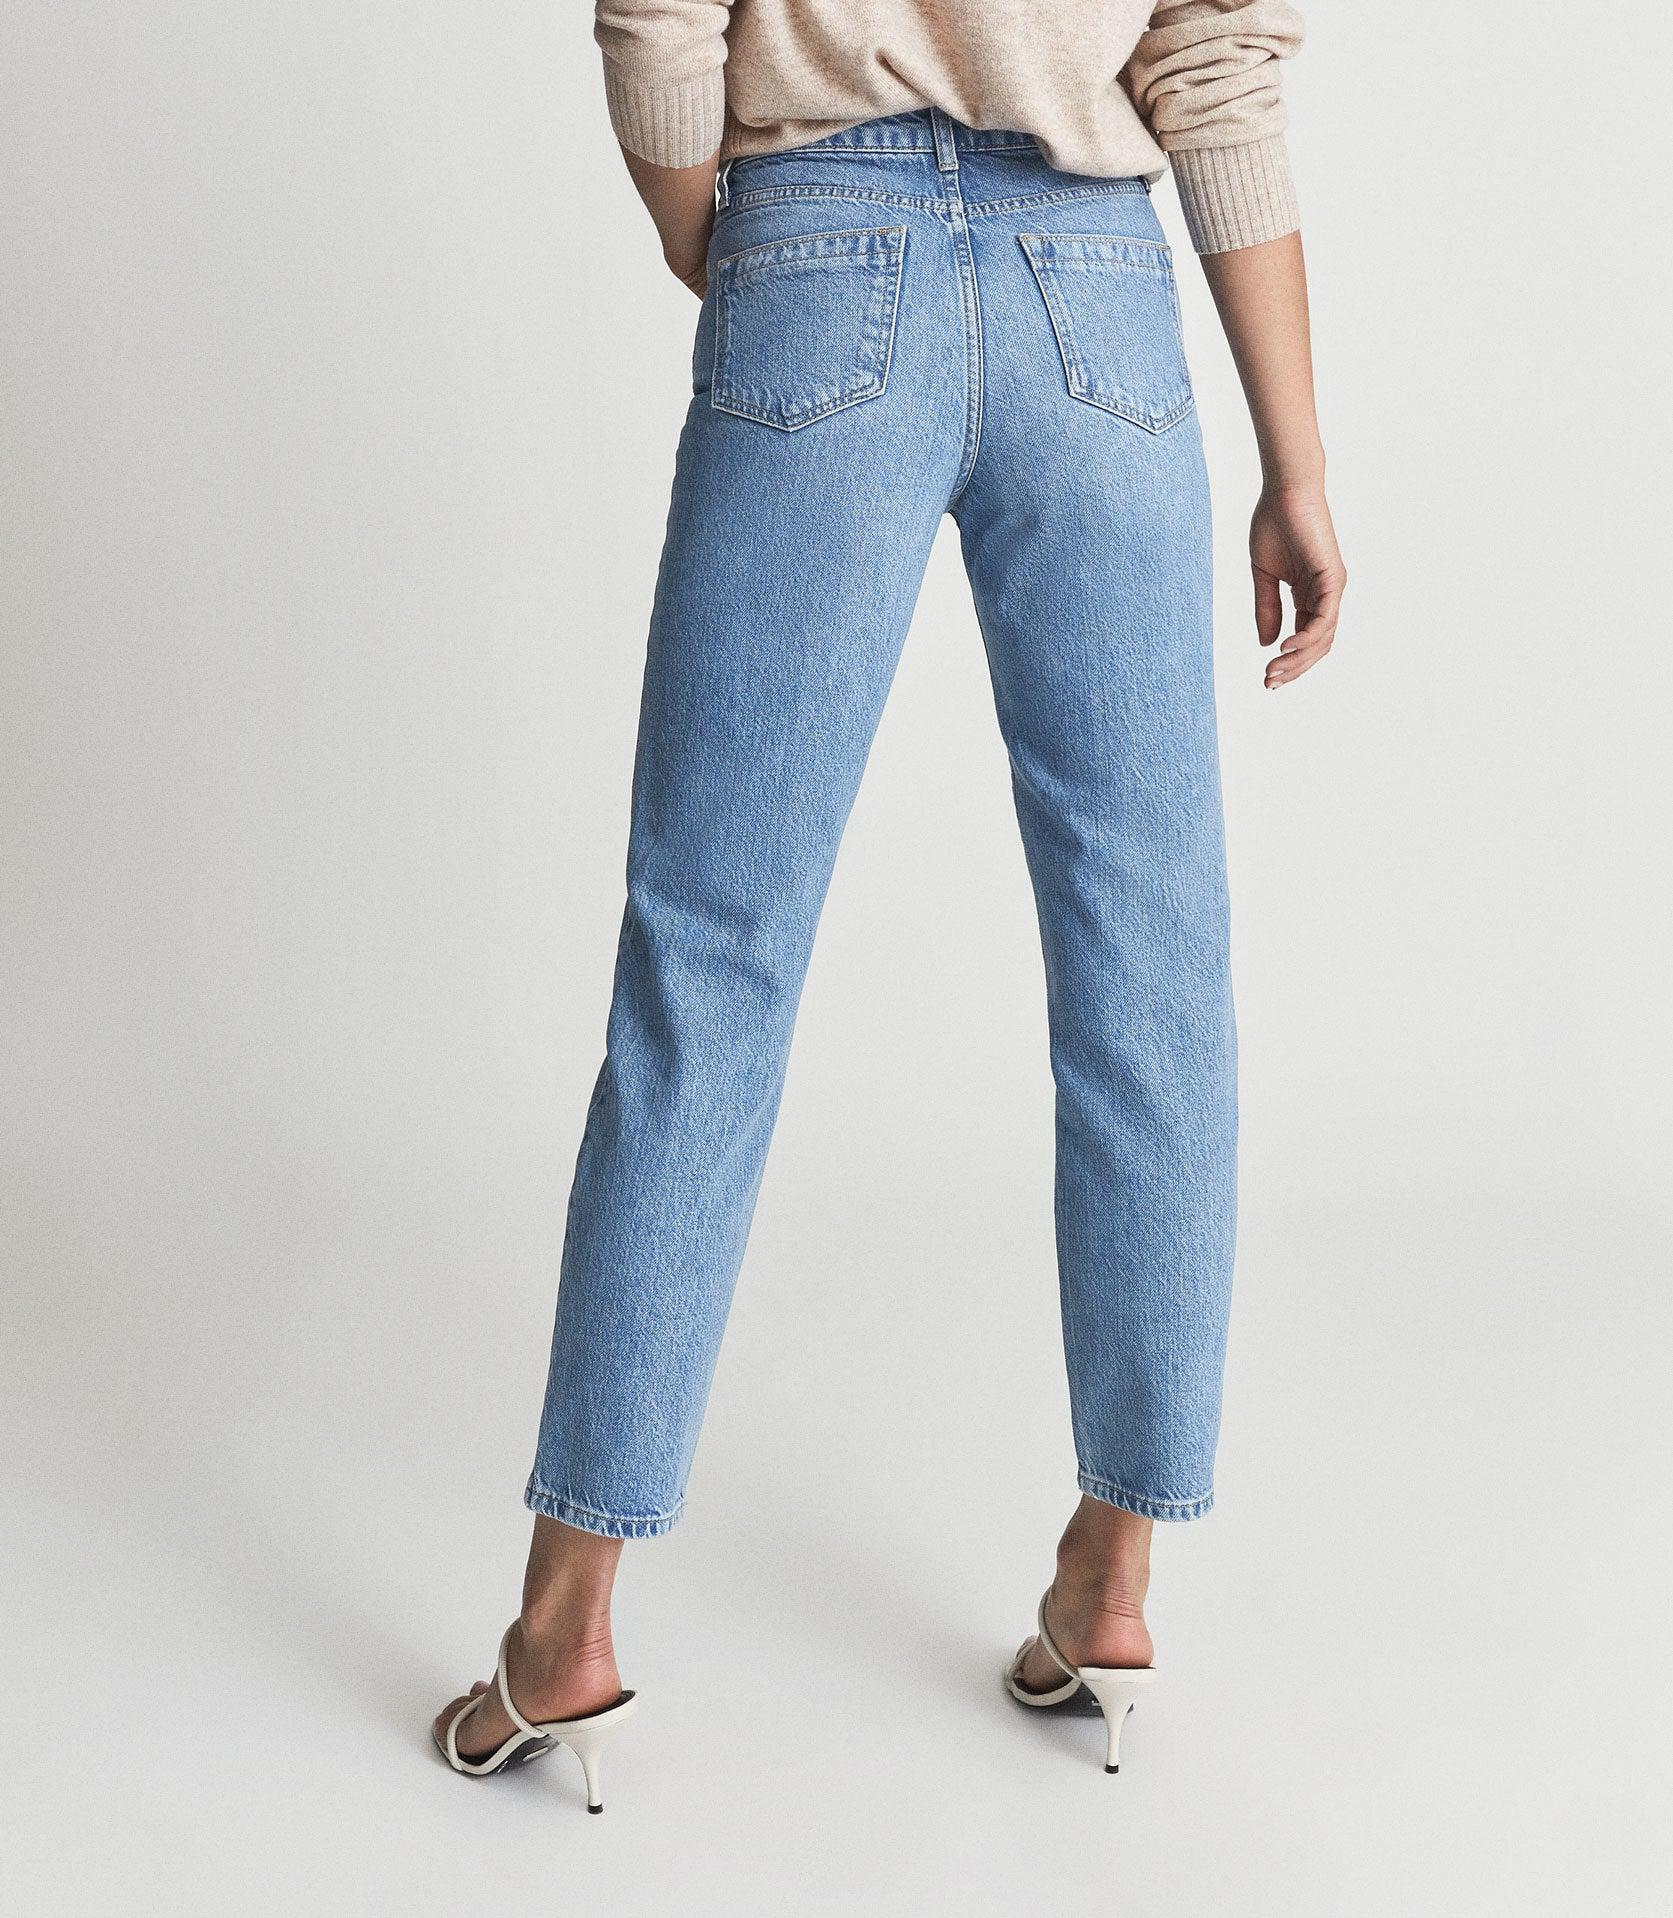 RAYE - HIGH RISE SLIM STRAIGHT FIT JEANS 2